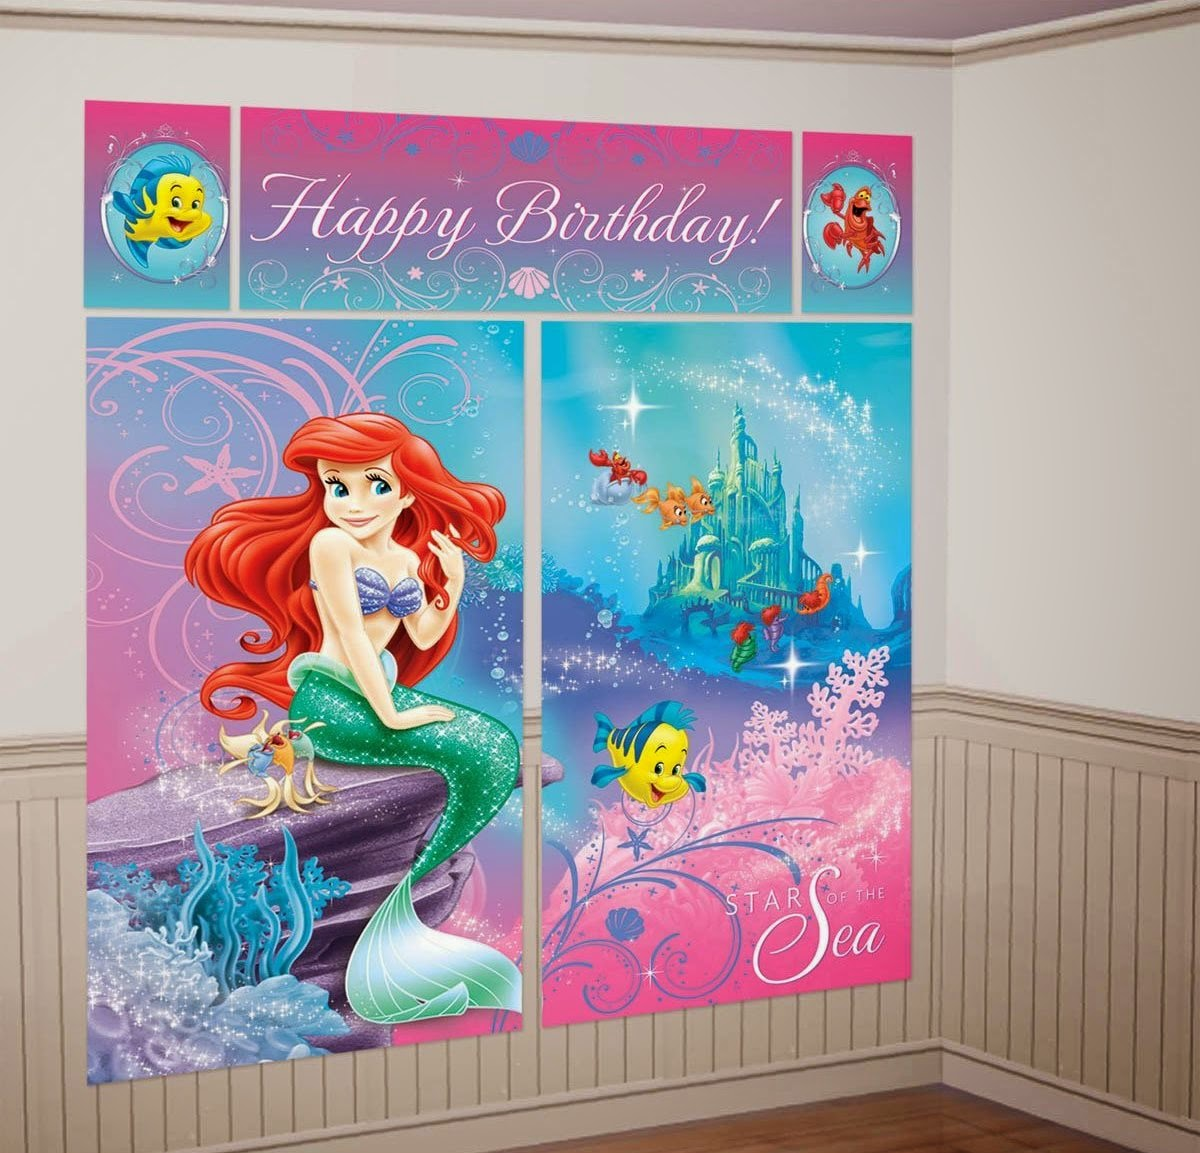 Disney 39 S Little Mermaid Themed Party Supplies And Ideas Fun Themed Party Ideas